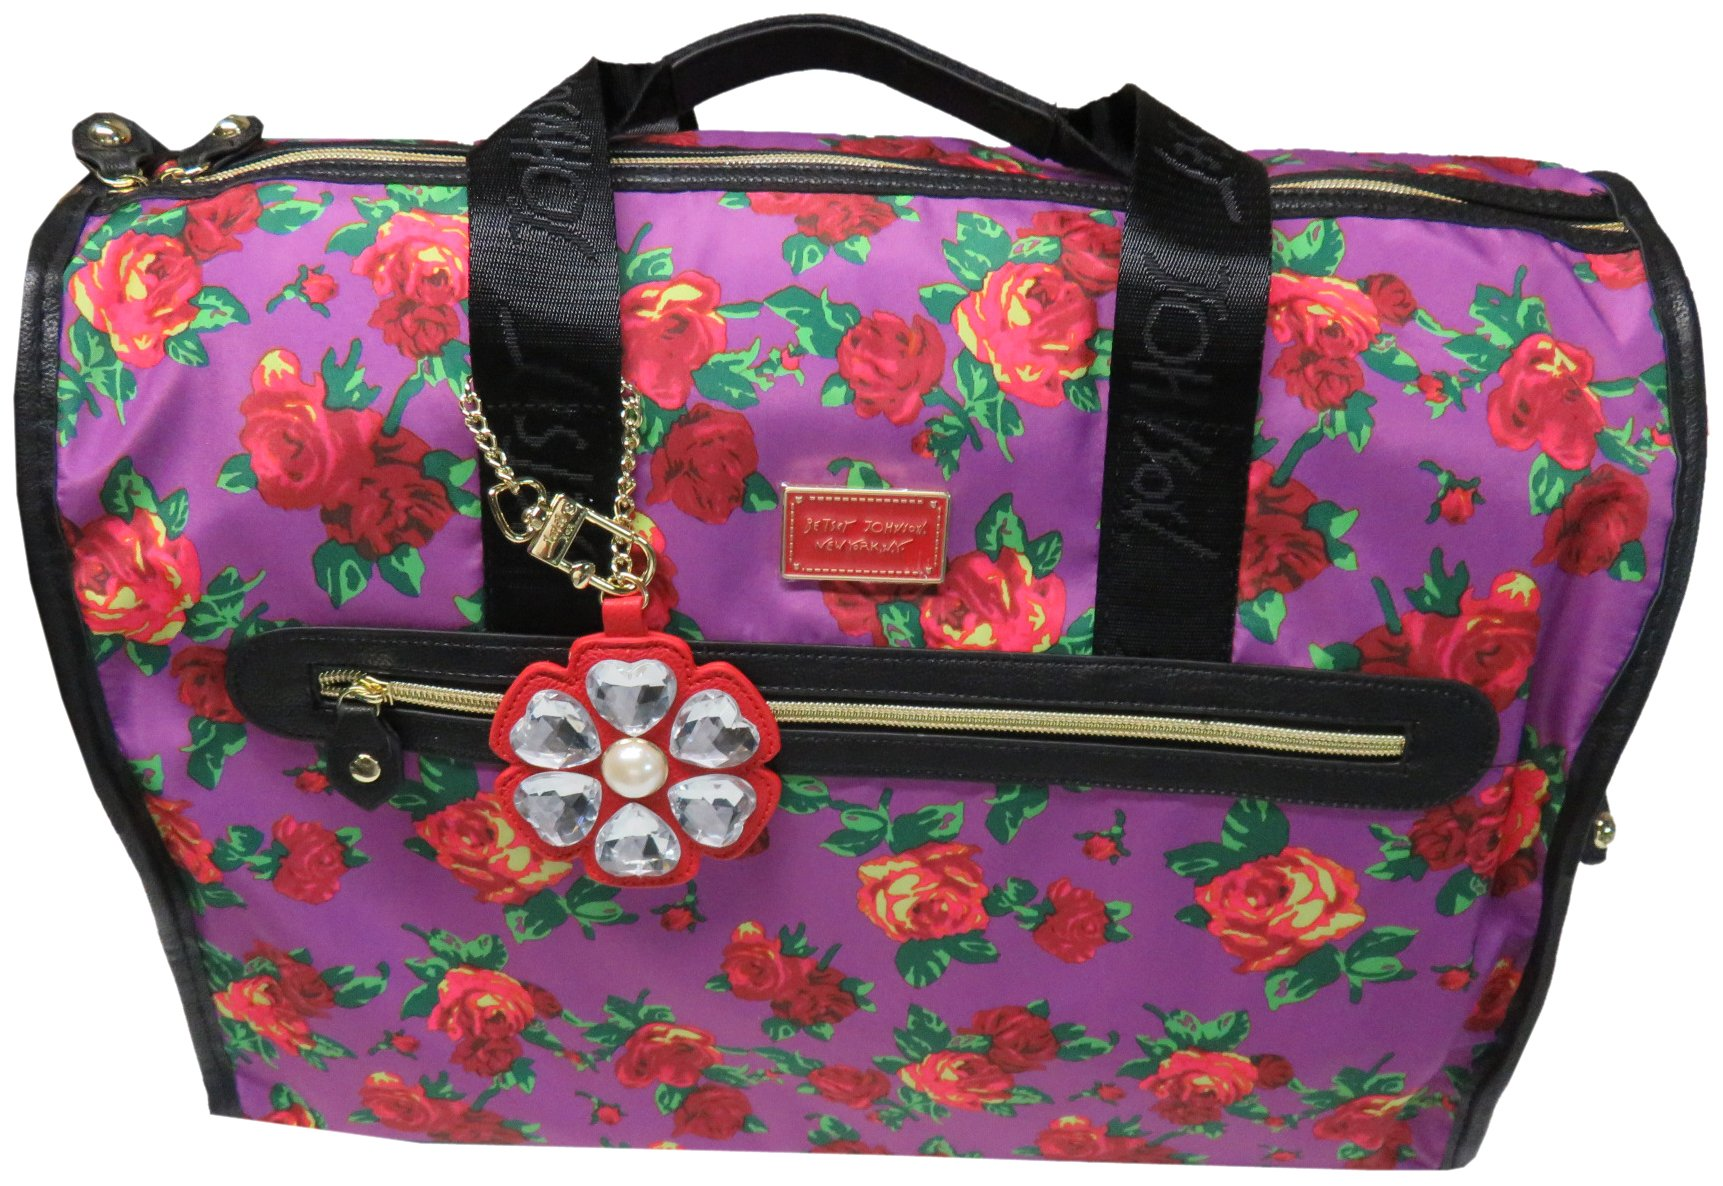 Betsey Johnson Large Nylon Weekender Duffel Bag, Floral/Purple&Red Roses